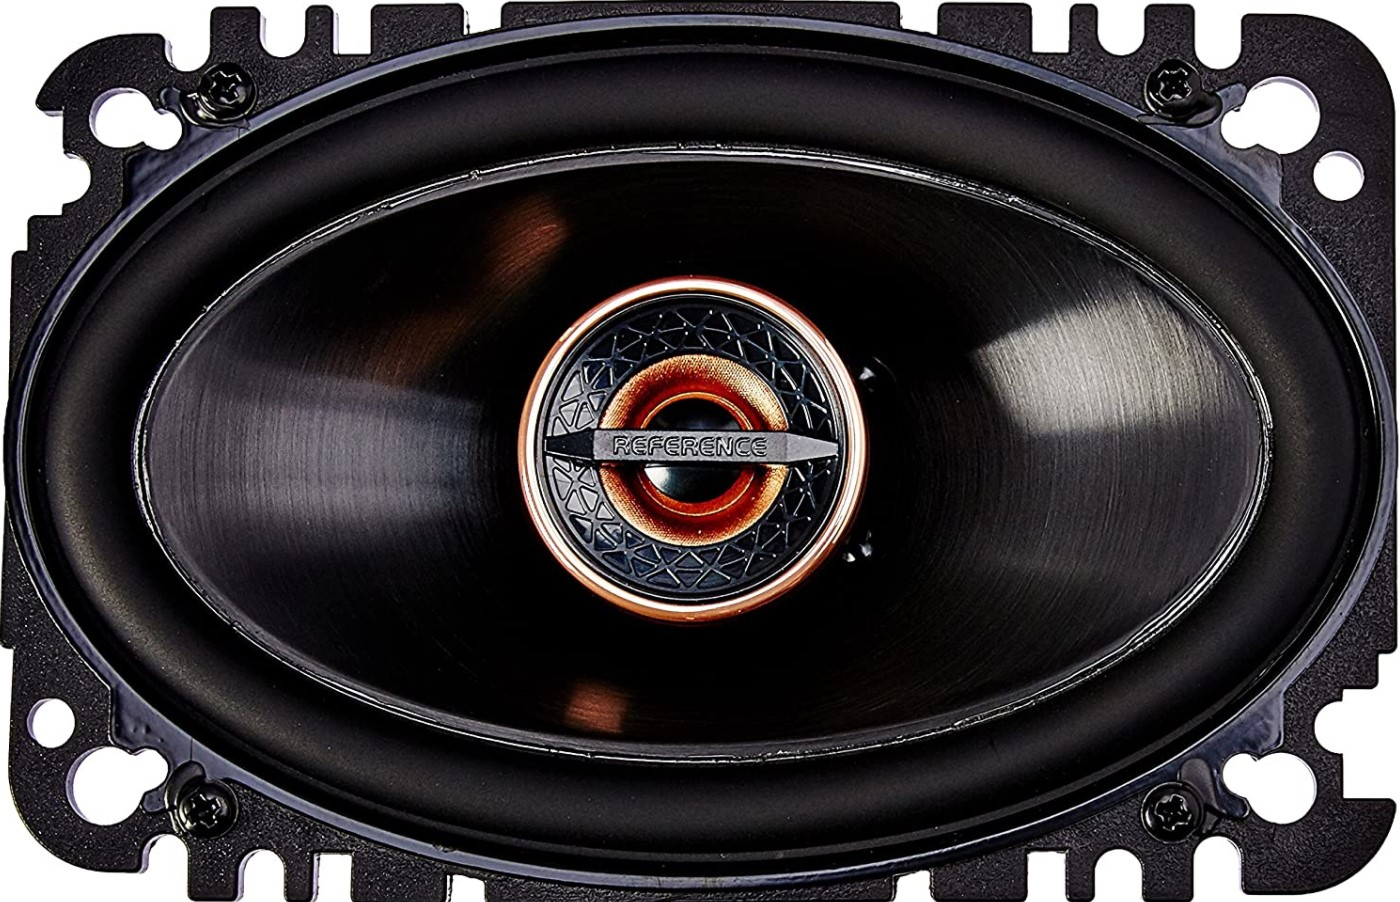 Infinity REF-6422cfx 135W Reference Series Coaxial Car Speaker